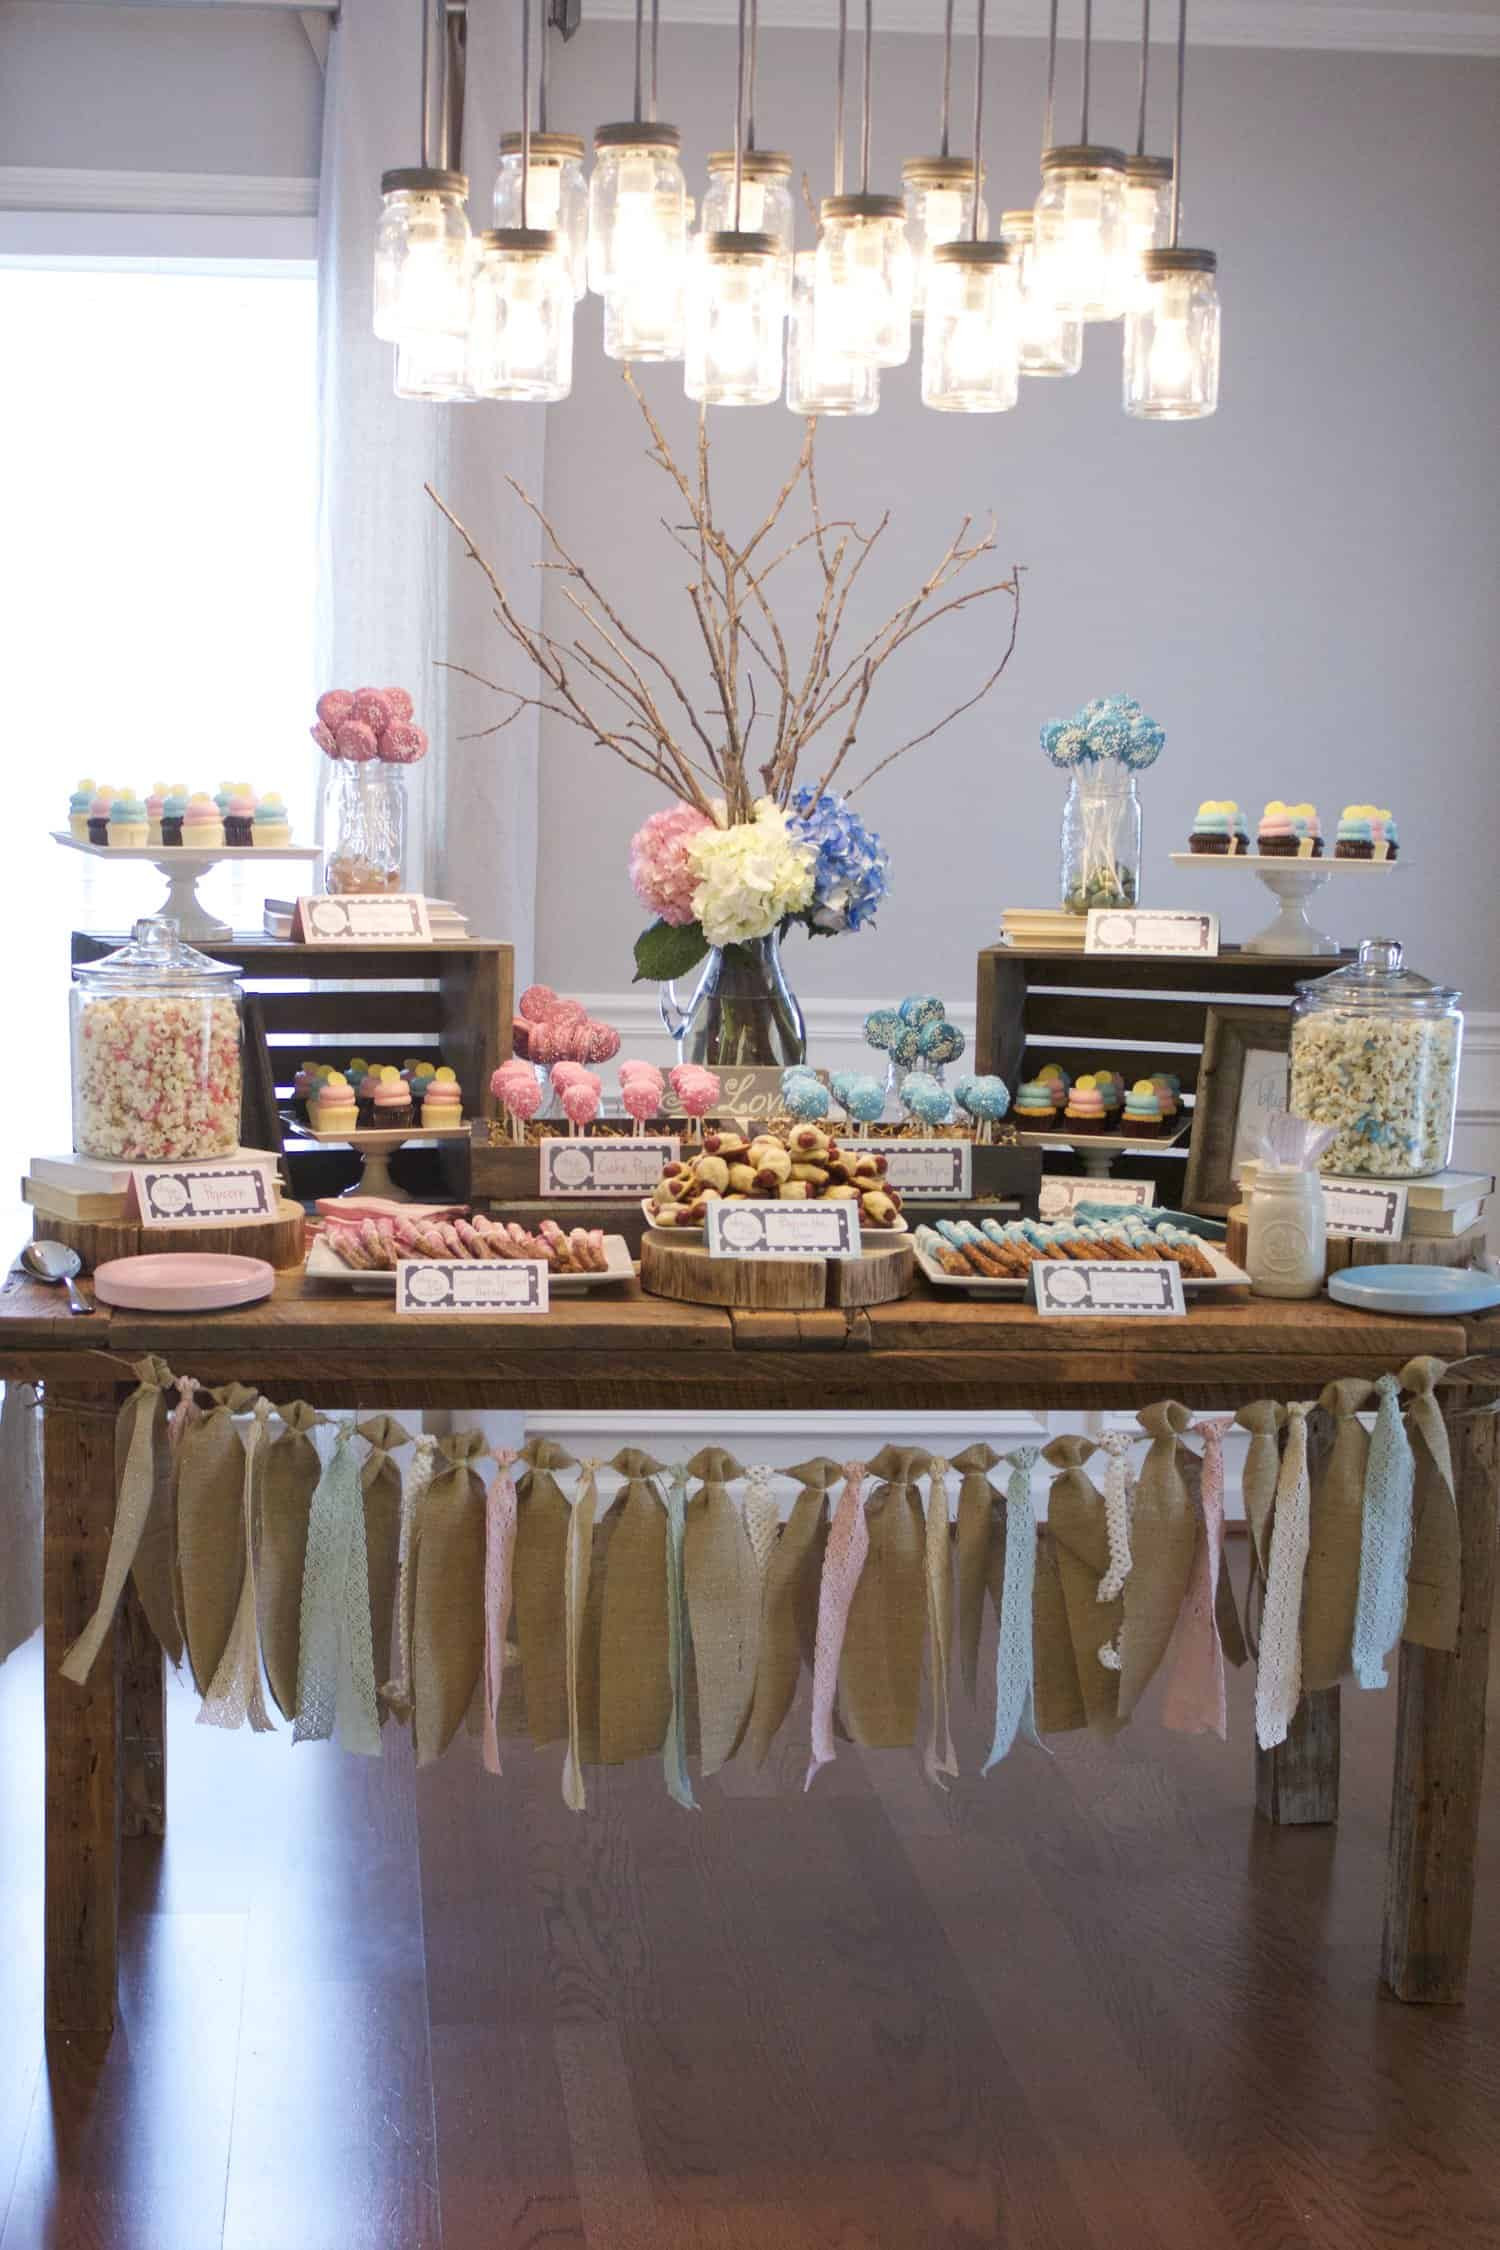 Cute Gender Reveal Party Ideas  17 Tips To Throw An Unfor table Gender Reveal Party